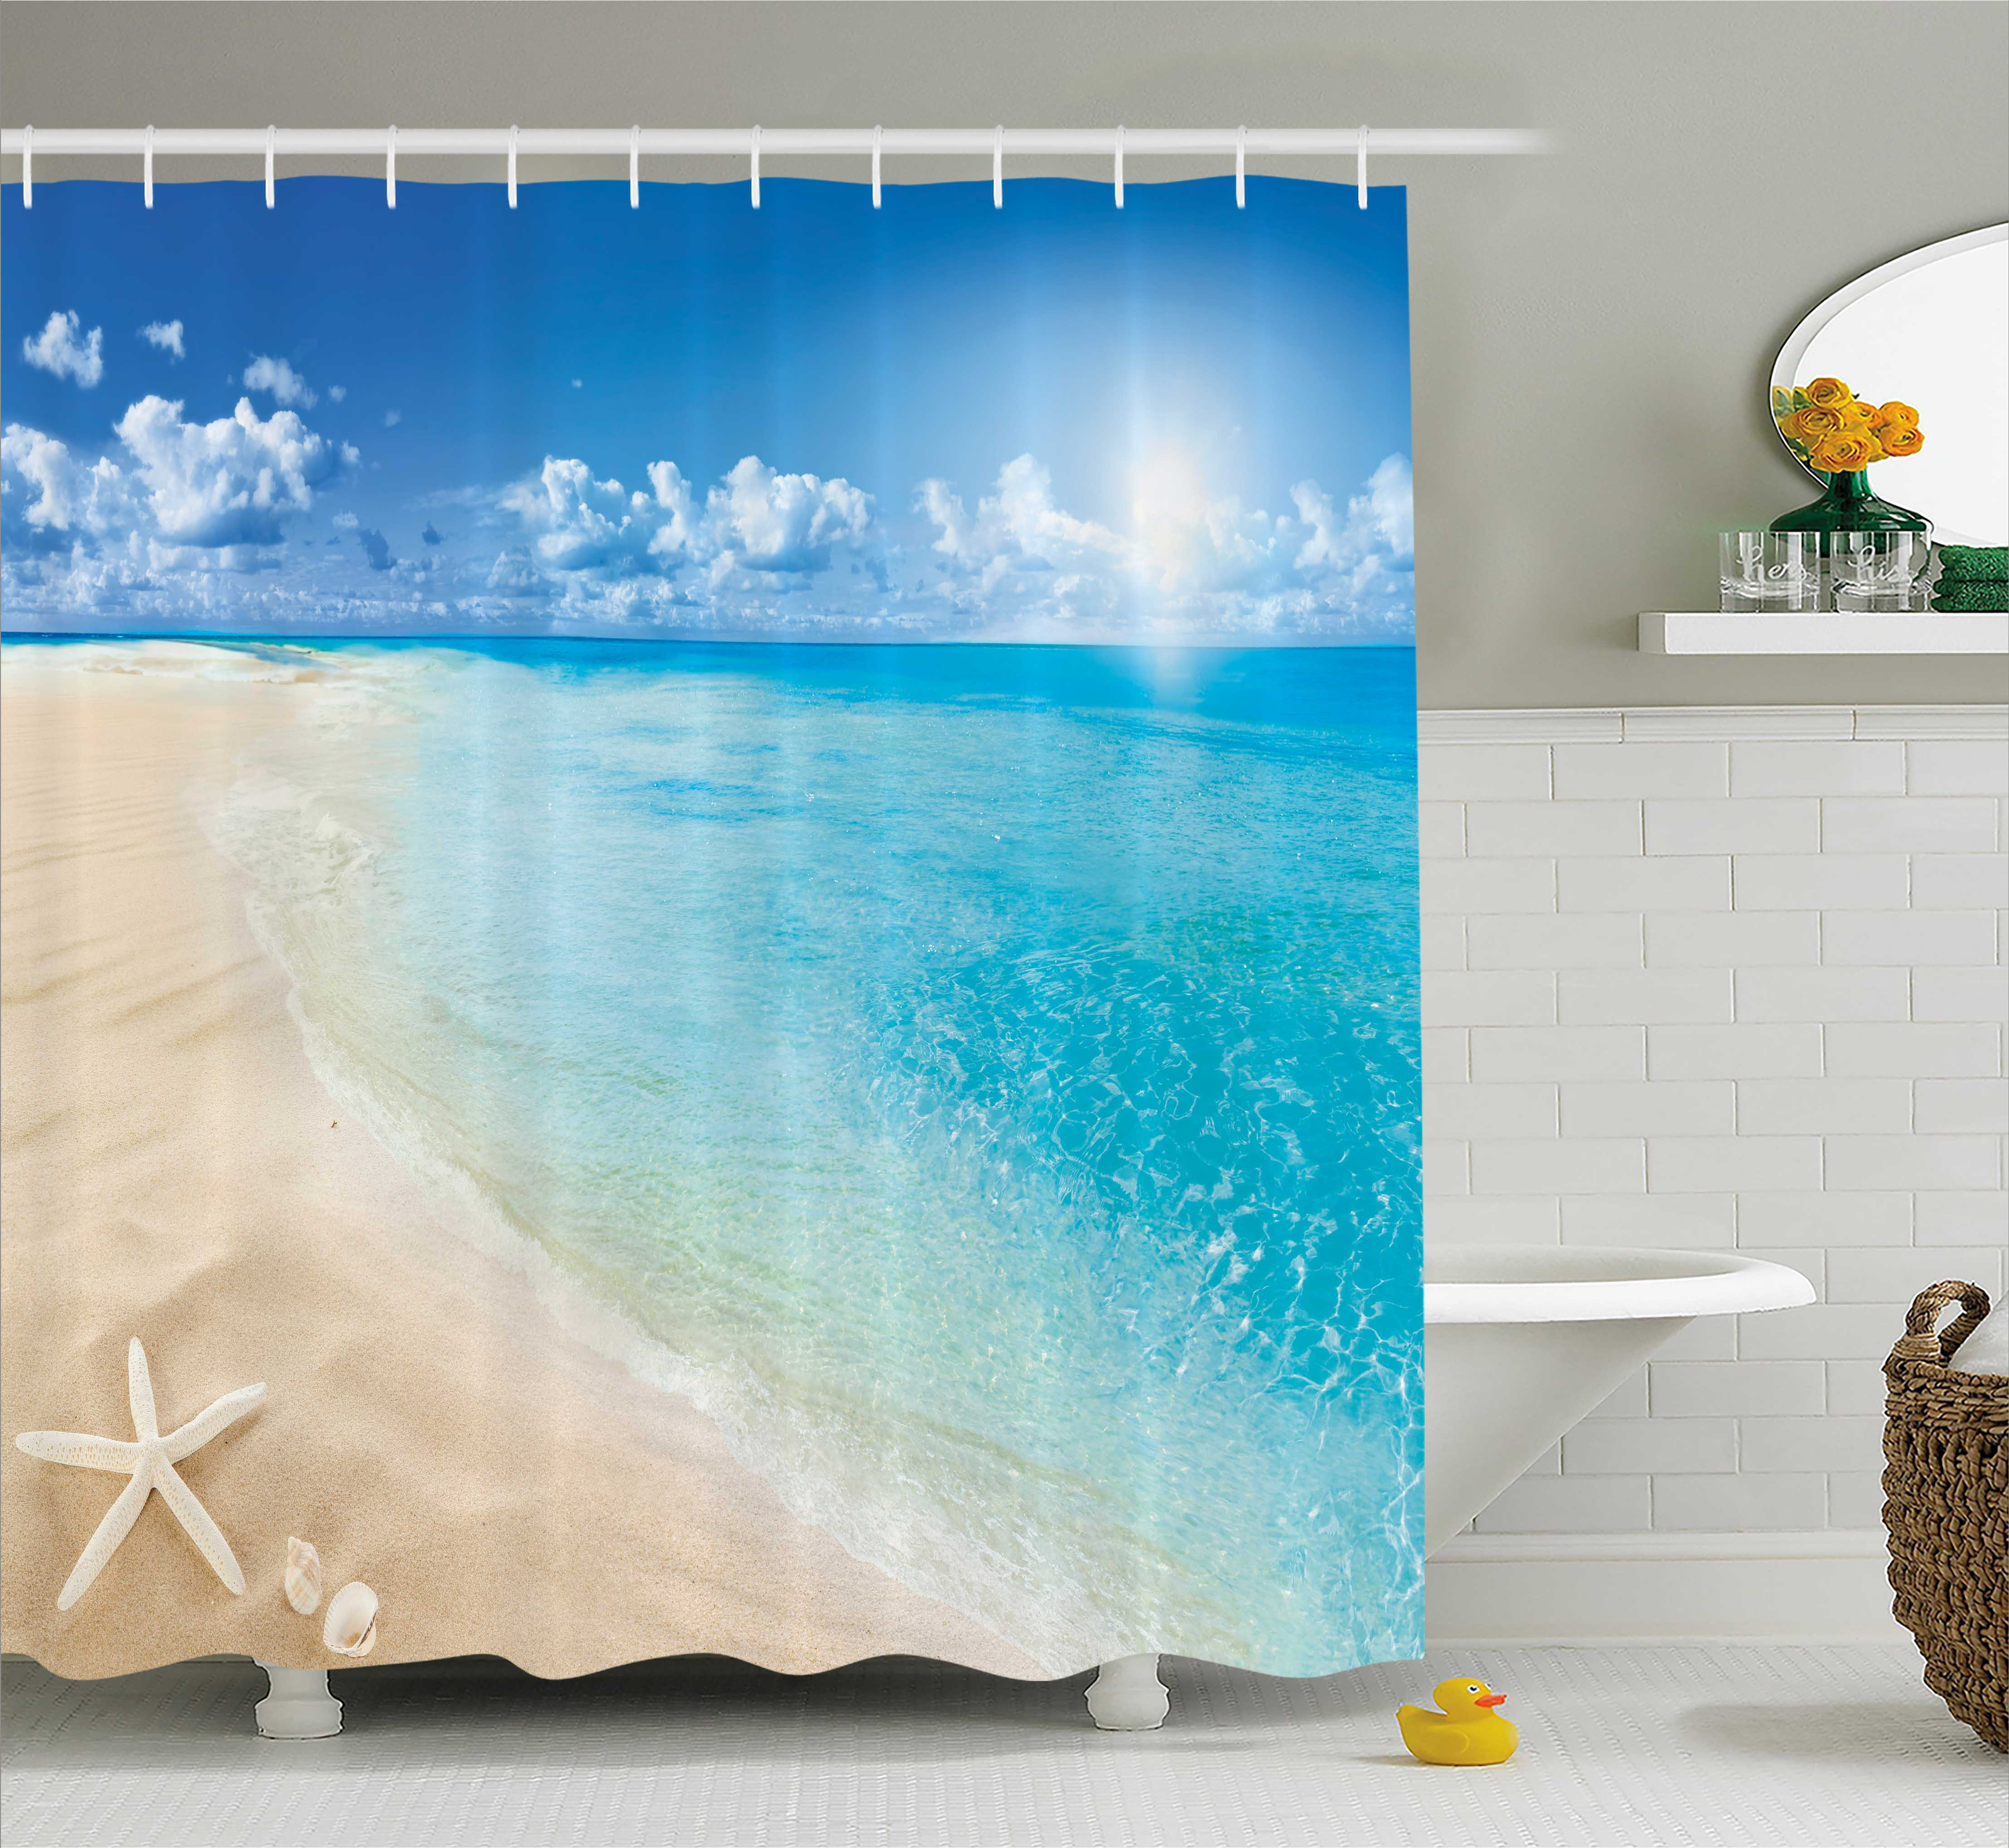 Beach Shower Curtain, Sunny Summer Seashore with Clear Sky Seashells Starfish Clouds Aquatic Picture, Fabric Bathroom Set with Hooks, 69W X 70L Inches, Aqua Cream Blue, by Ambesonne